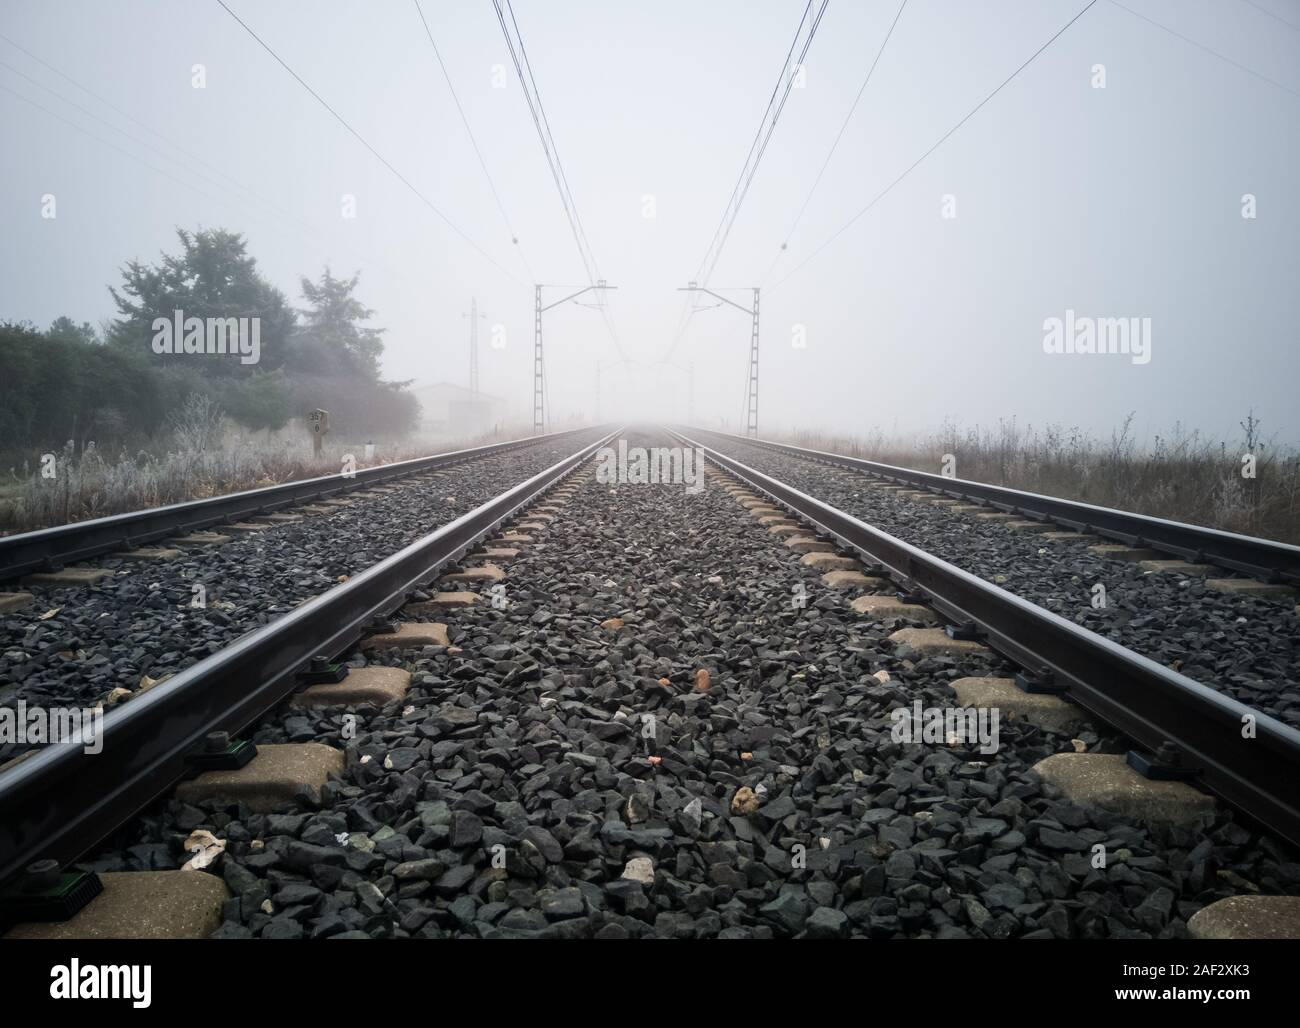 Train tracks and catenary posts disappear into thick fog in the country. Train concept Stock Photo